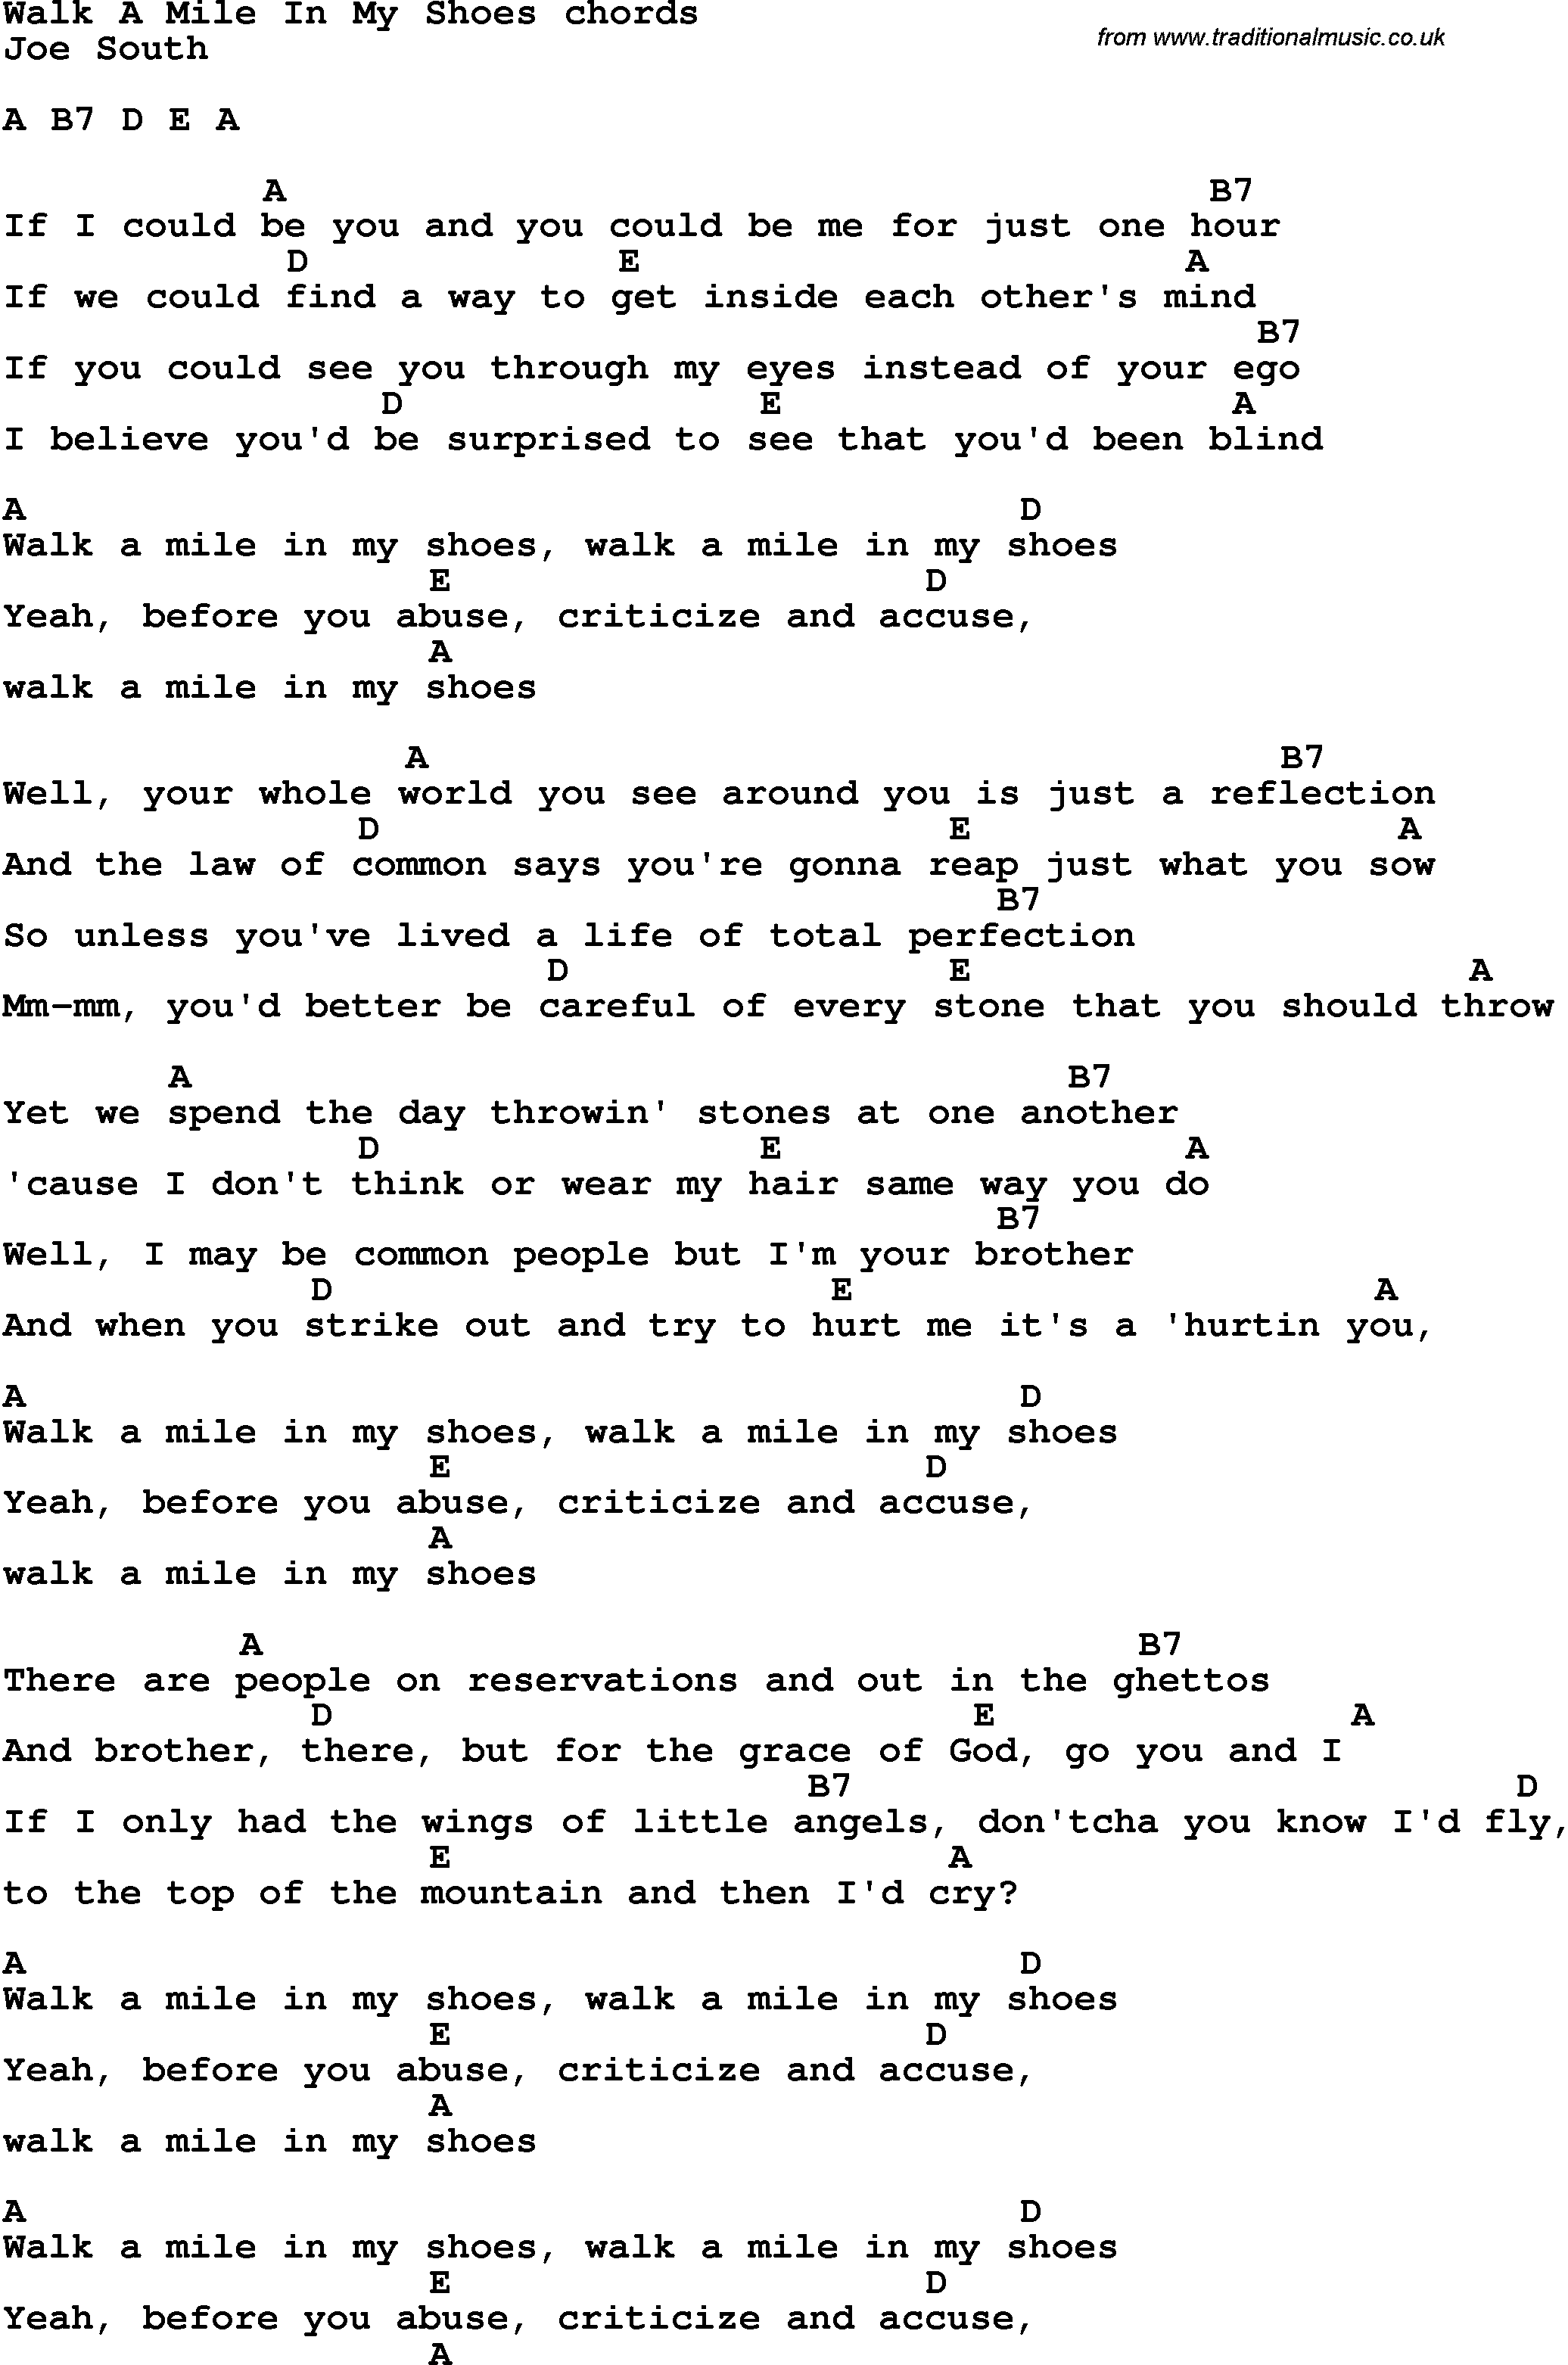 song lyrics with guitar chords for walk a mile in my shoes